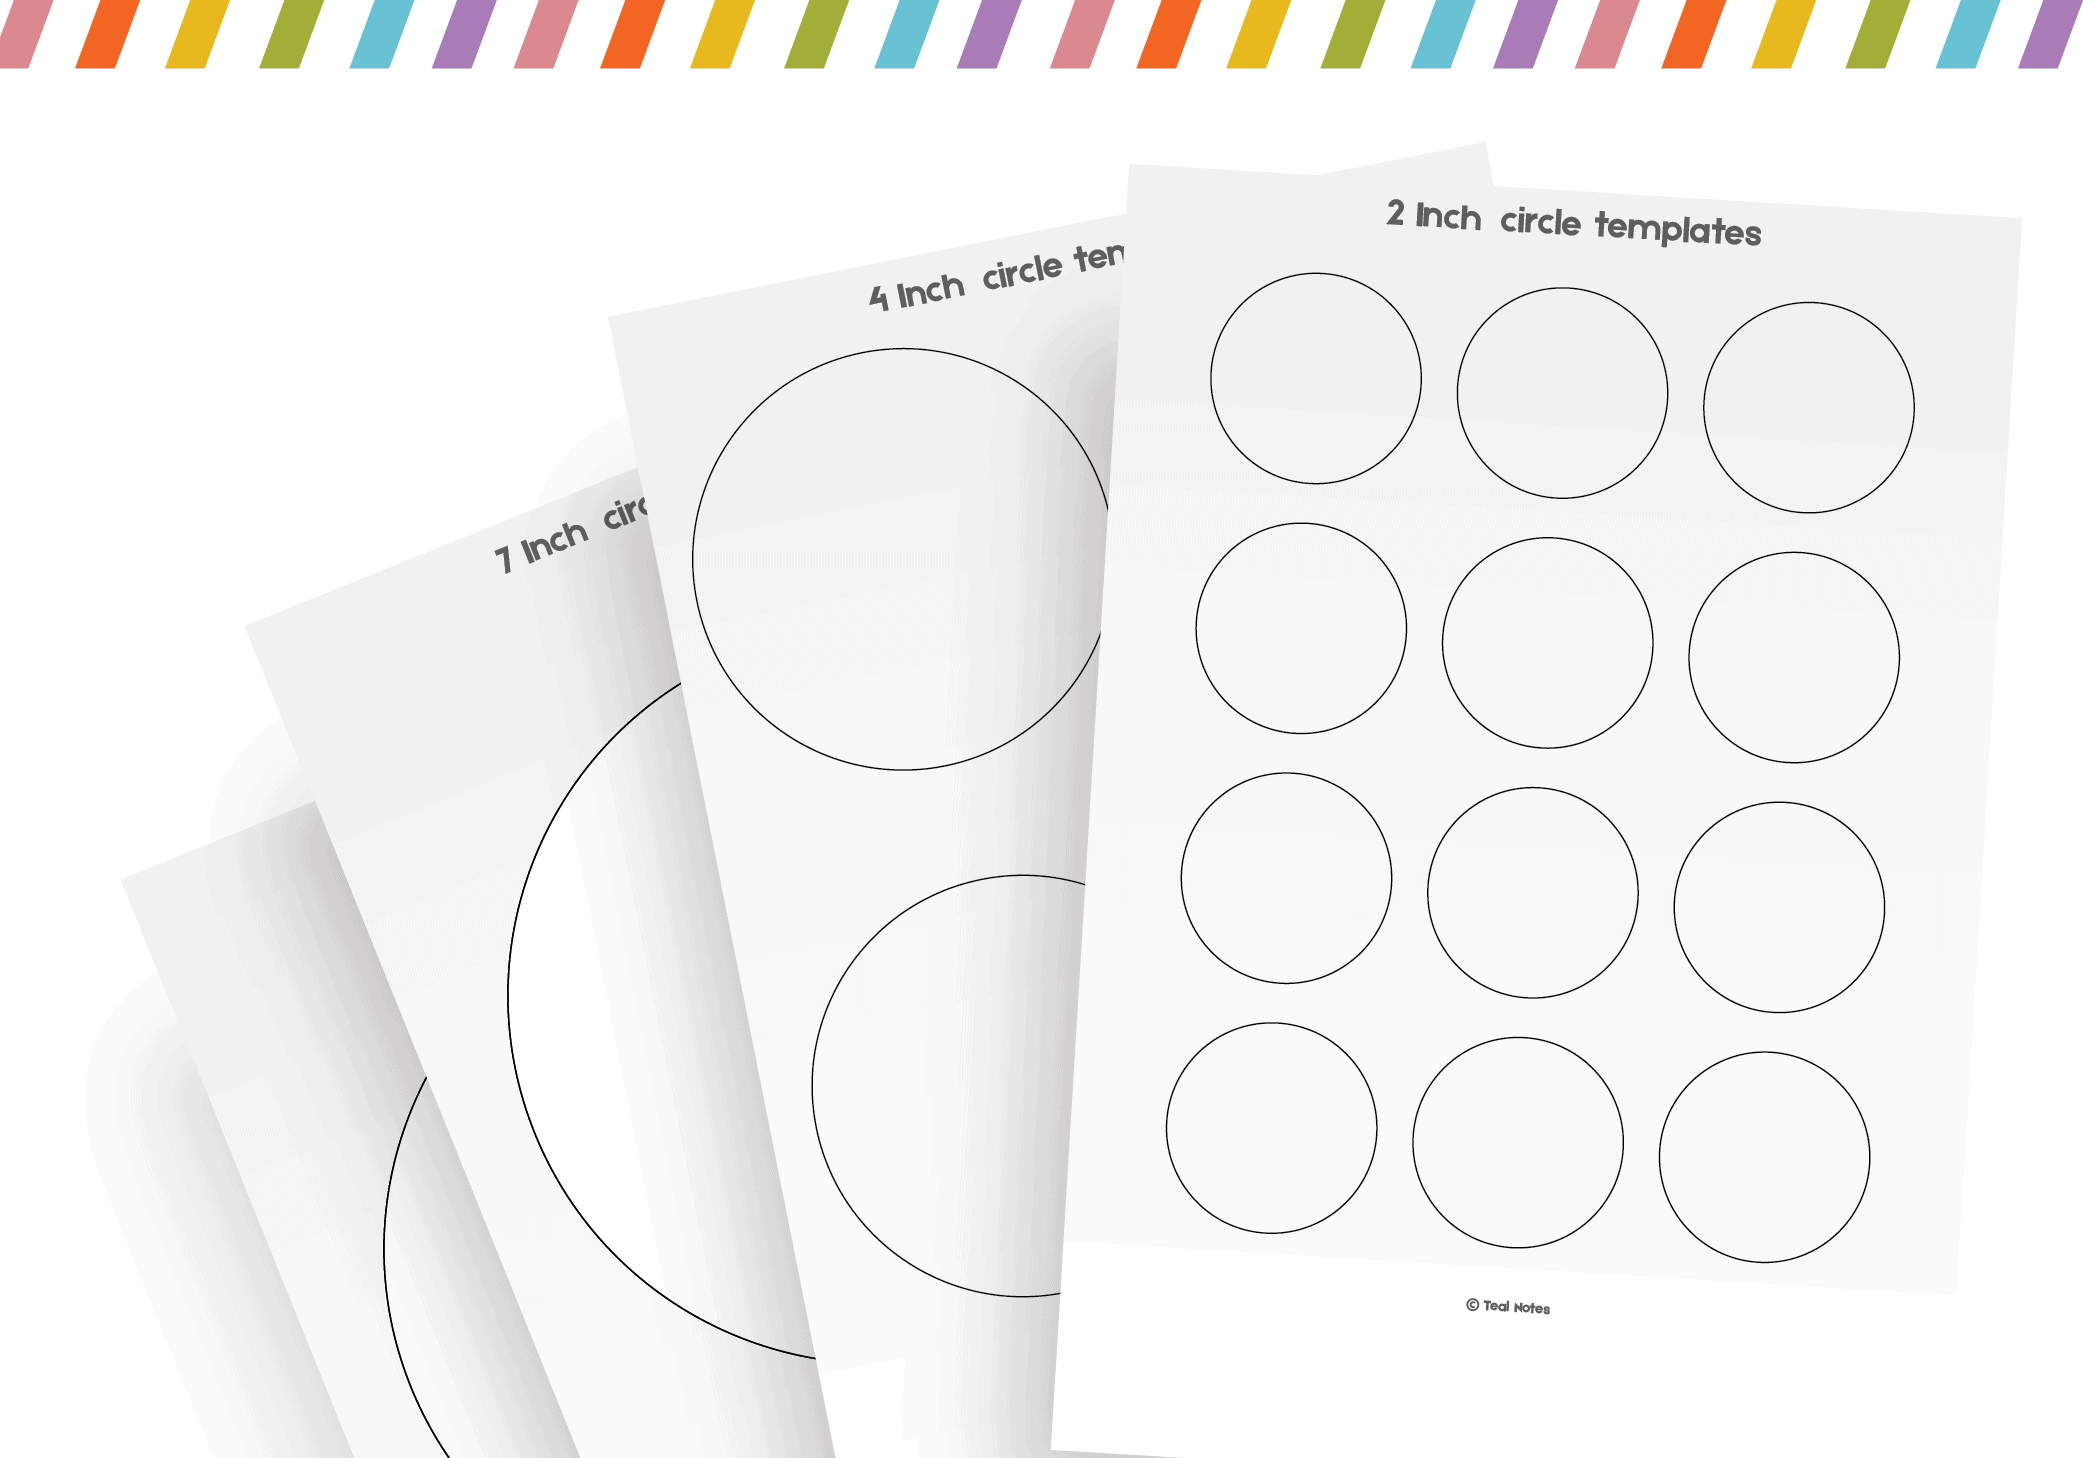 image regarding Free Printable Sign Templates identify Circle Template: Absolutely free Printable Circle Templates For Your